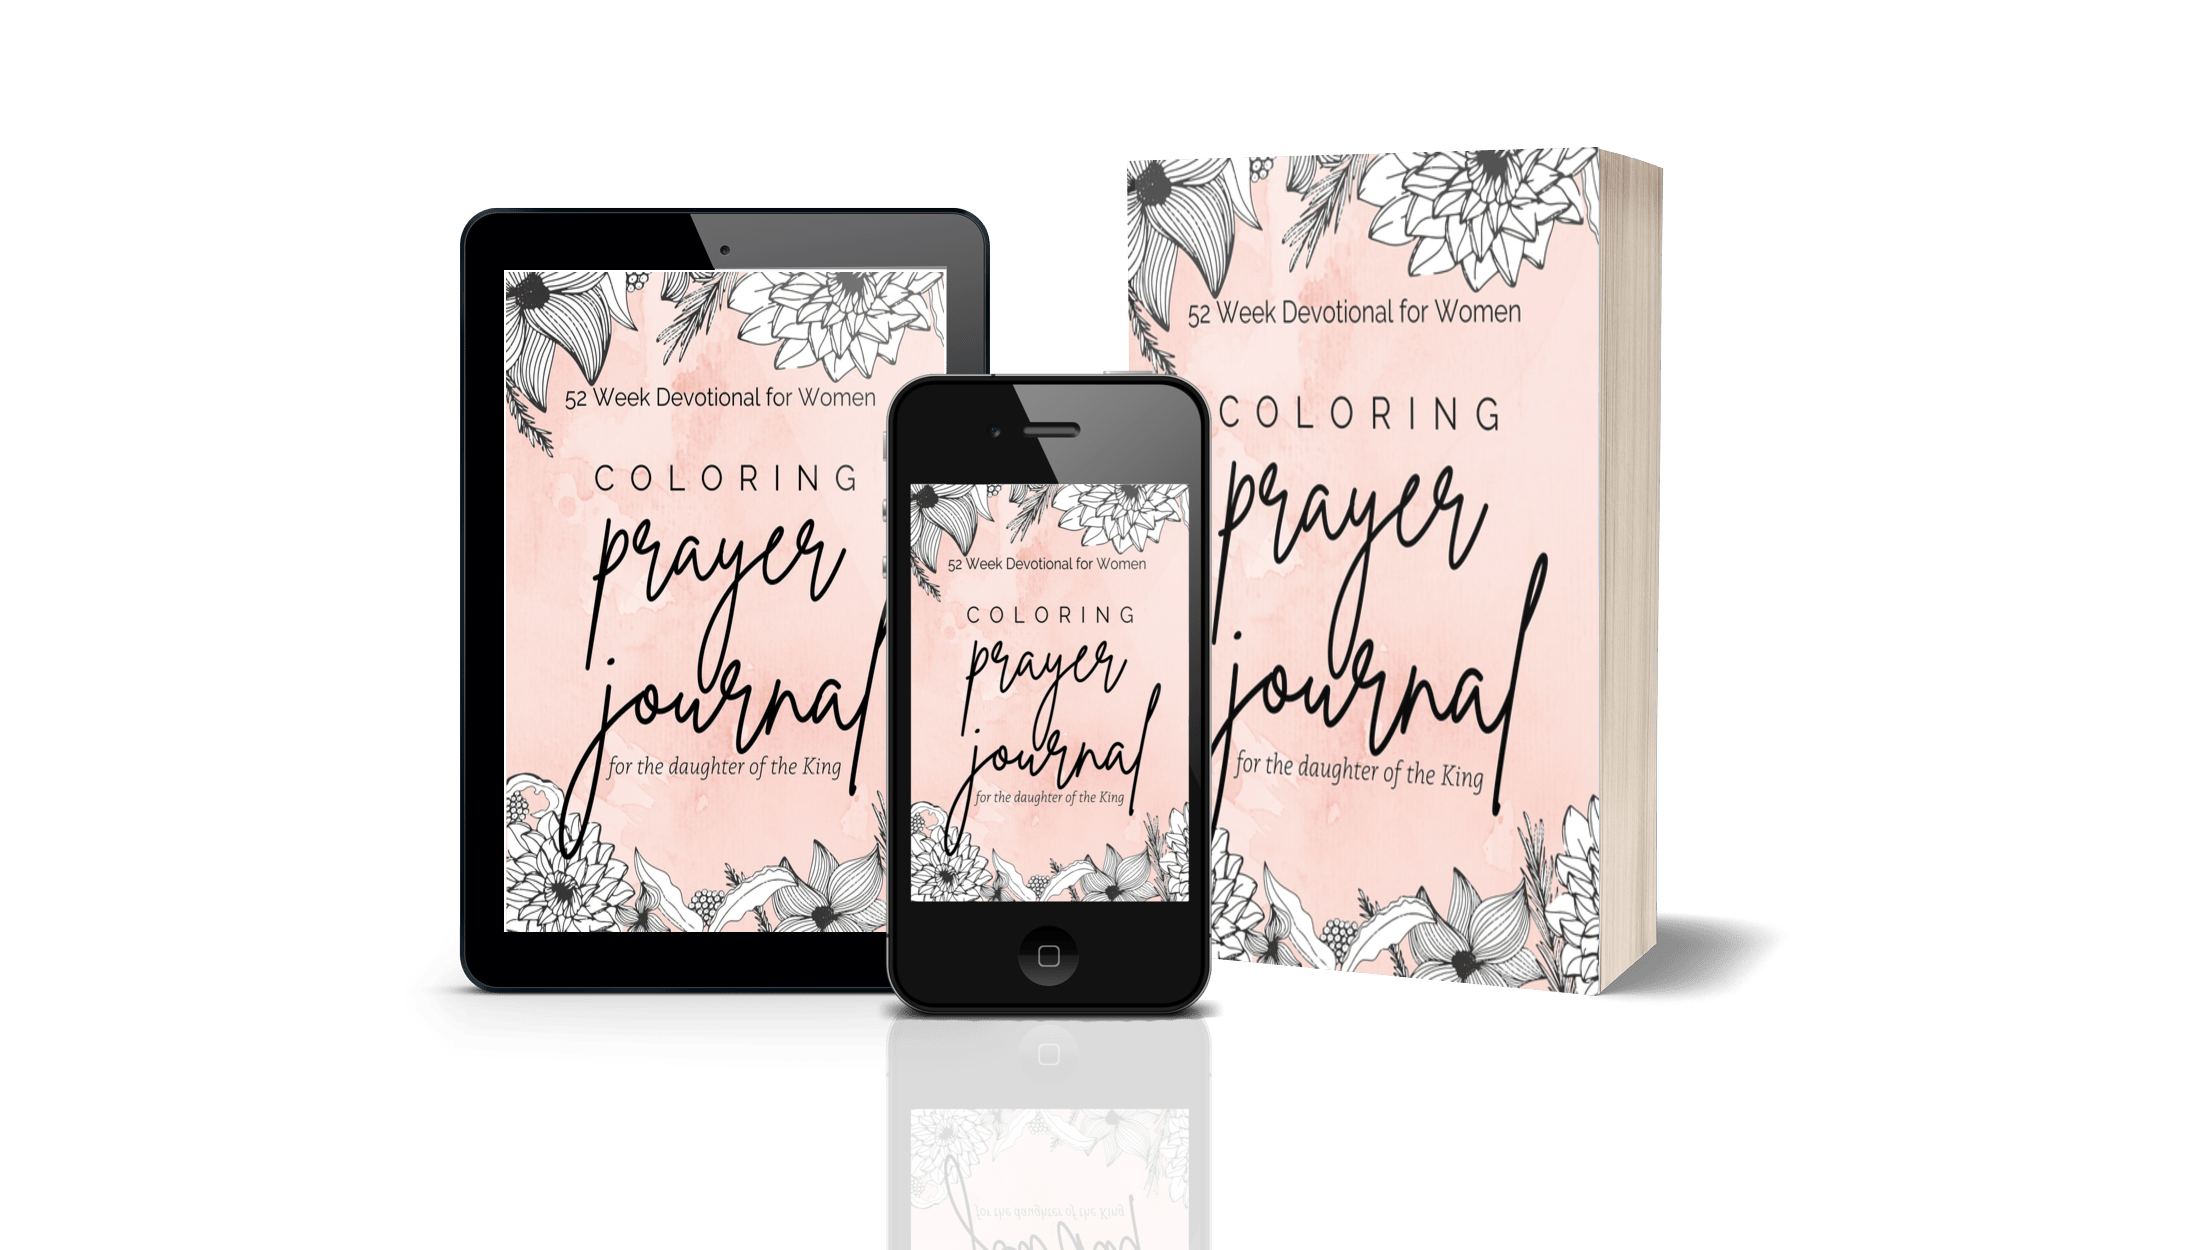 Coloring Prayer Journal for the daughter of the King